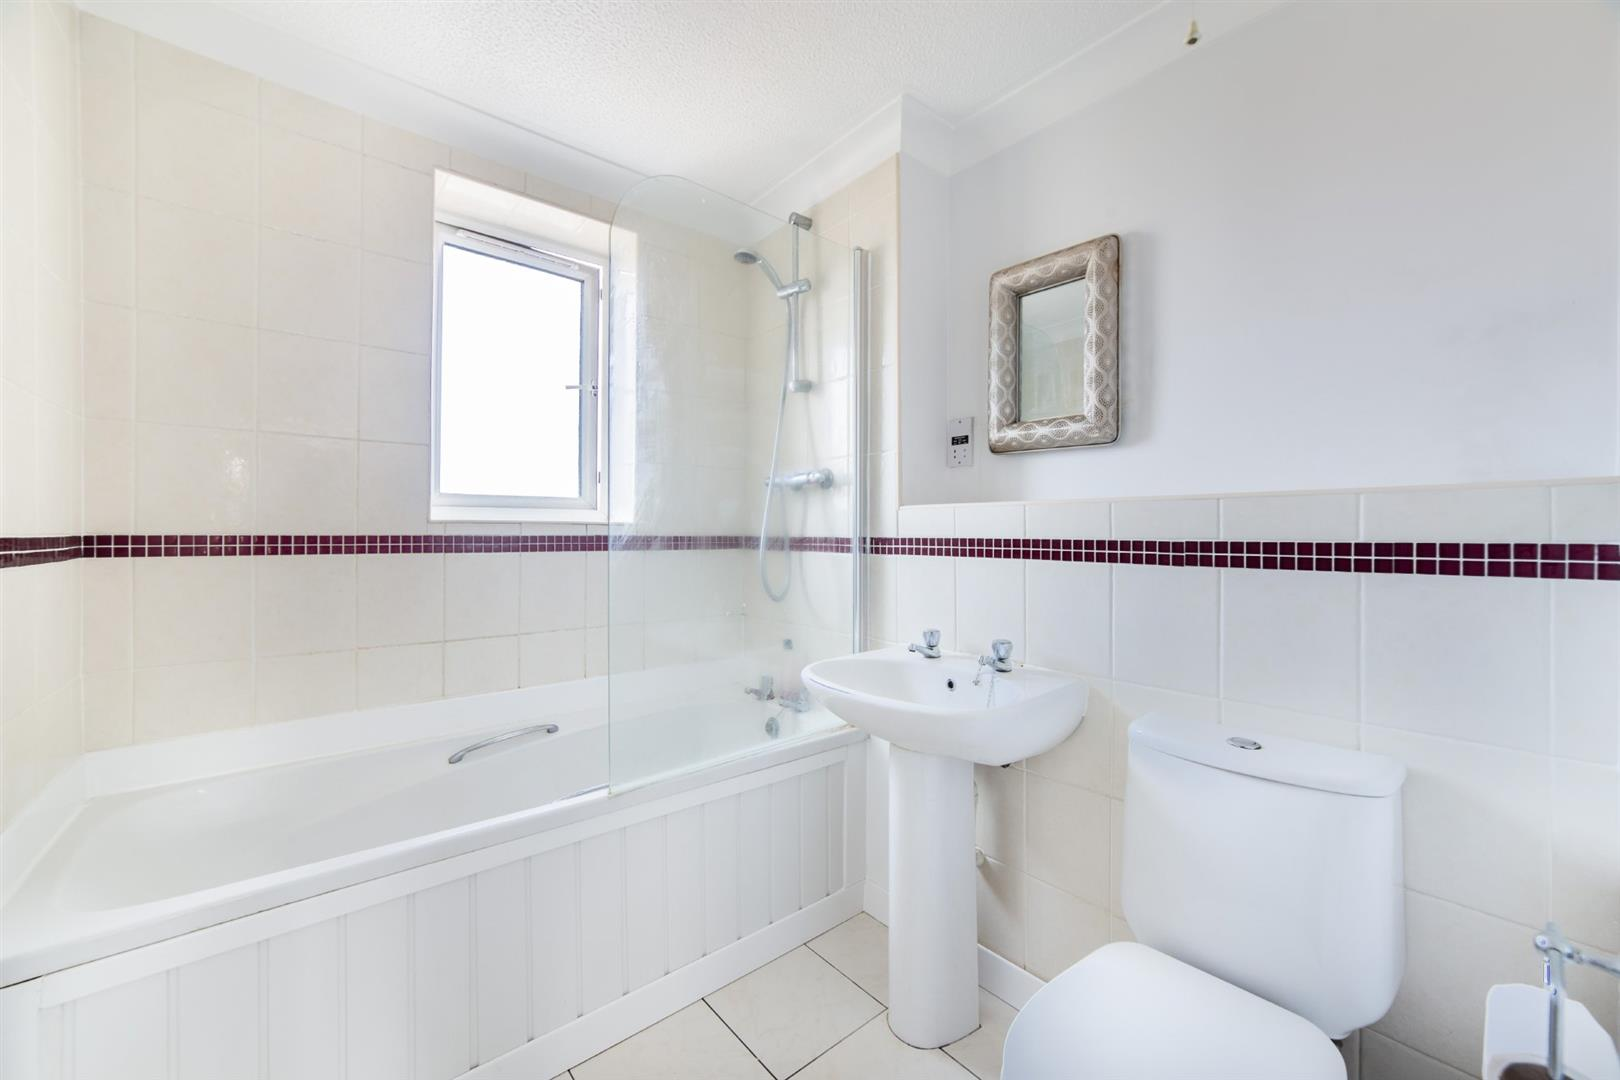 2 bed apartment for sale in Newcastle Upon Tyne, NE6 5BJ  - Property Image 9